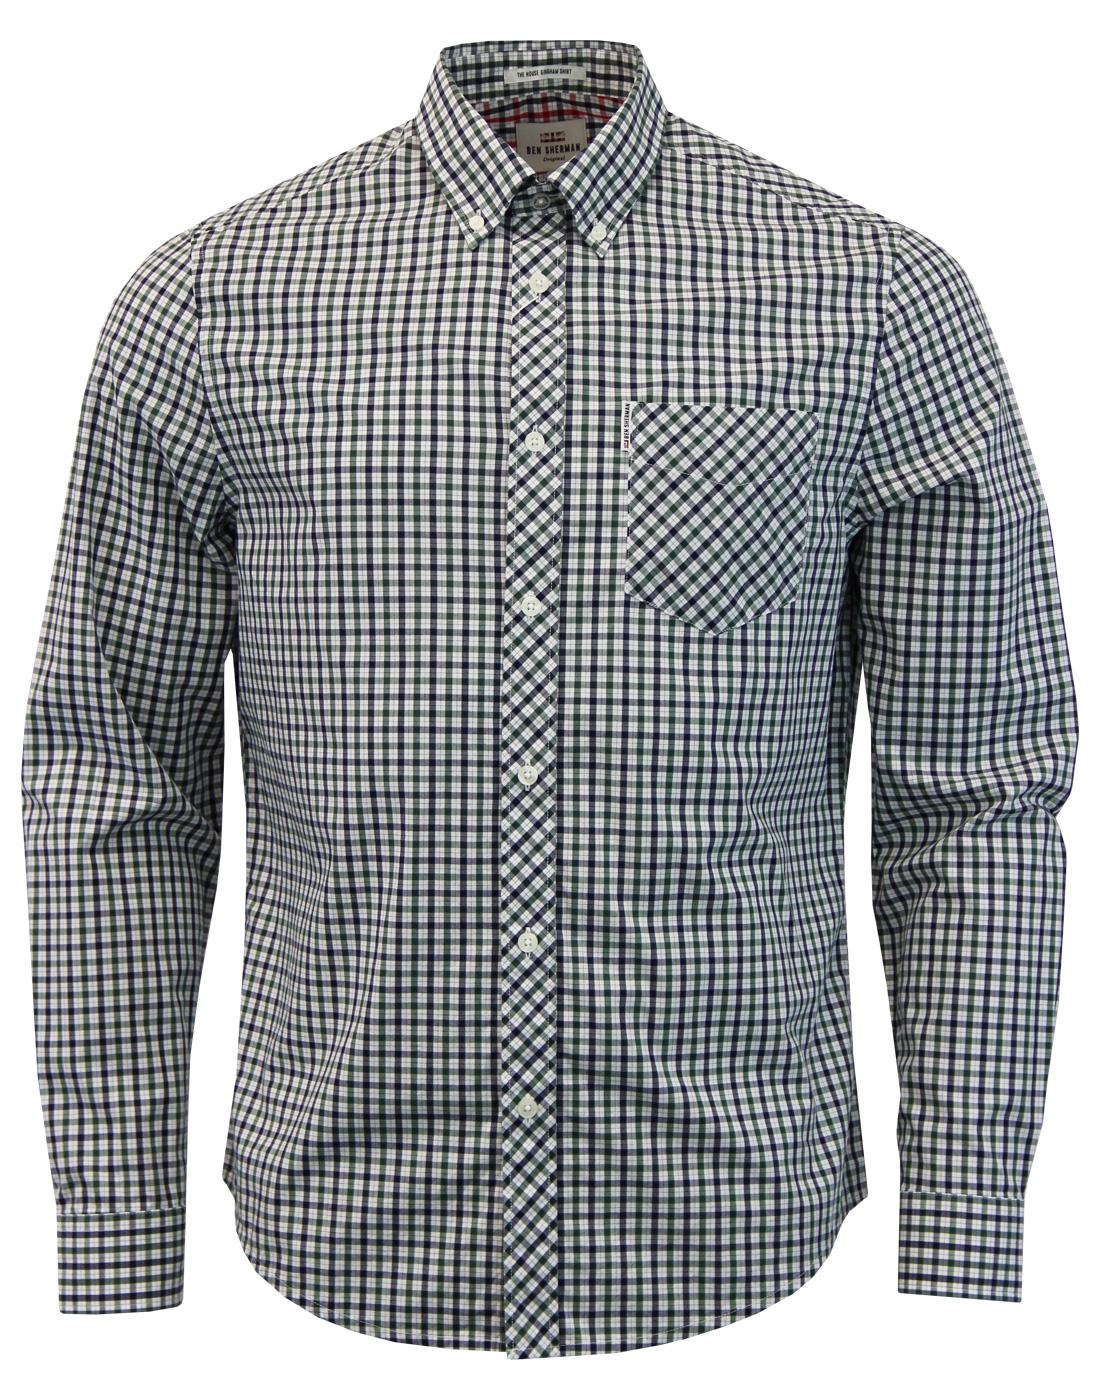 BEN SHERMAN Mod 60s House Check Shirt in Green